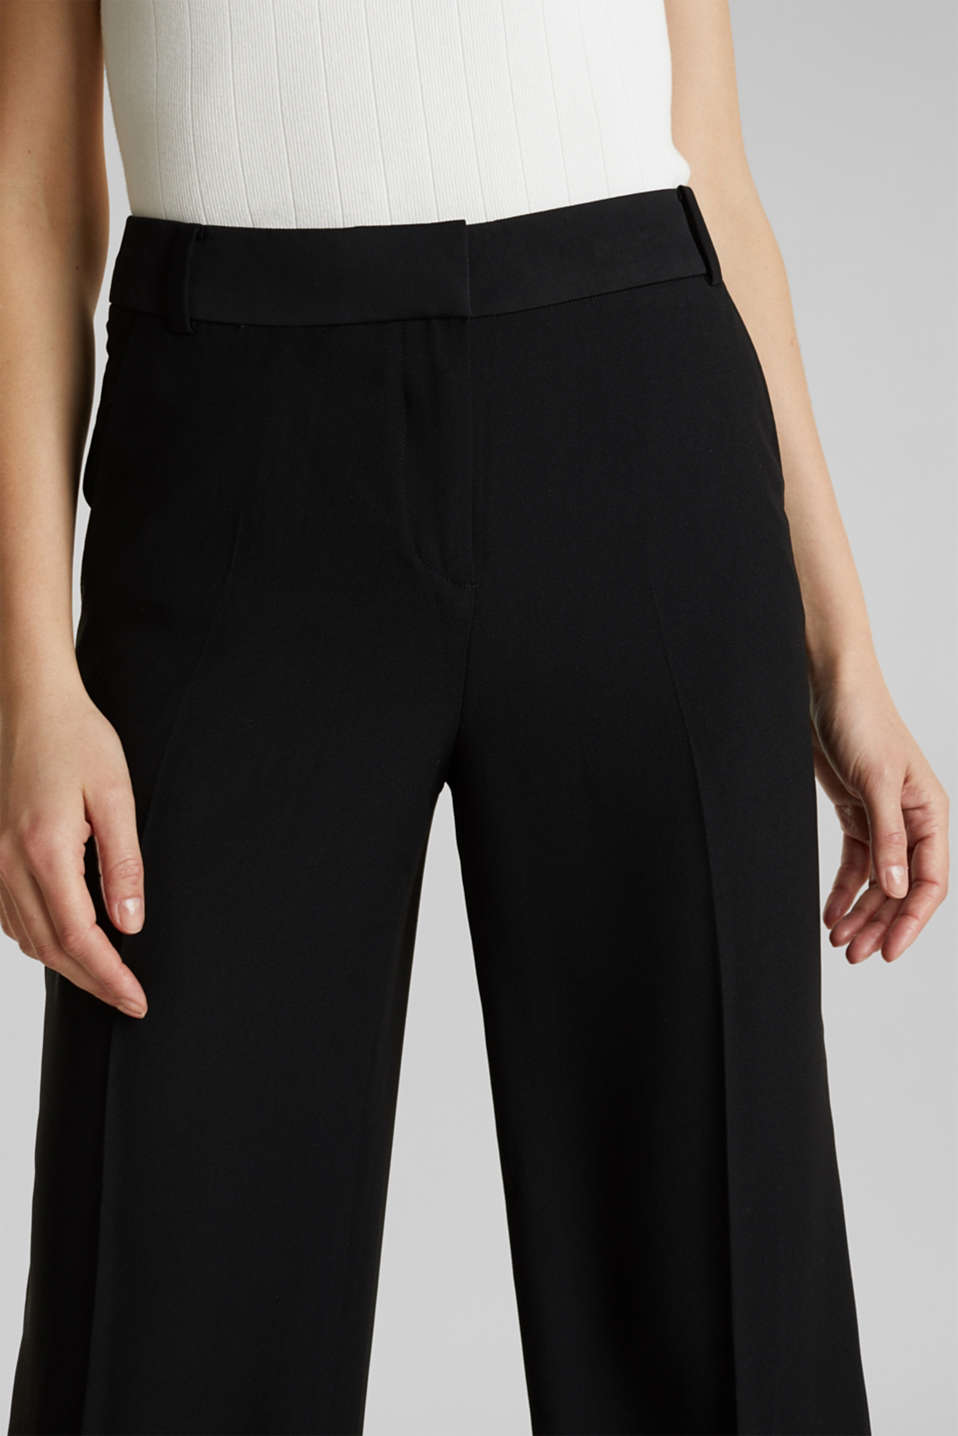 MATT SHINE mix + match culottes, BLACK, detail image number 2